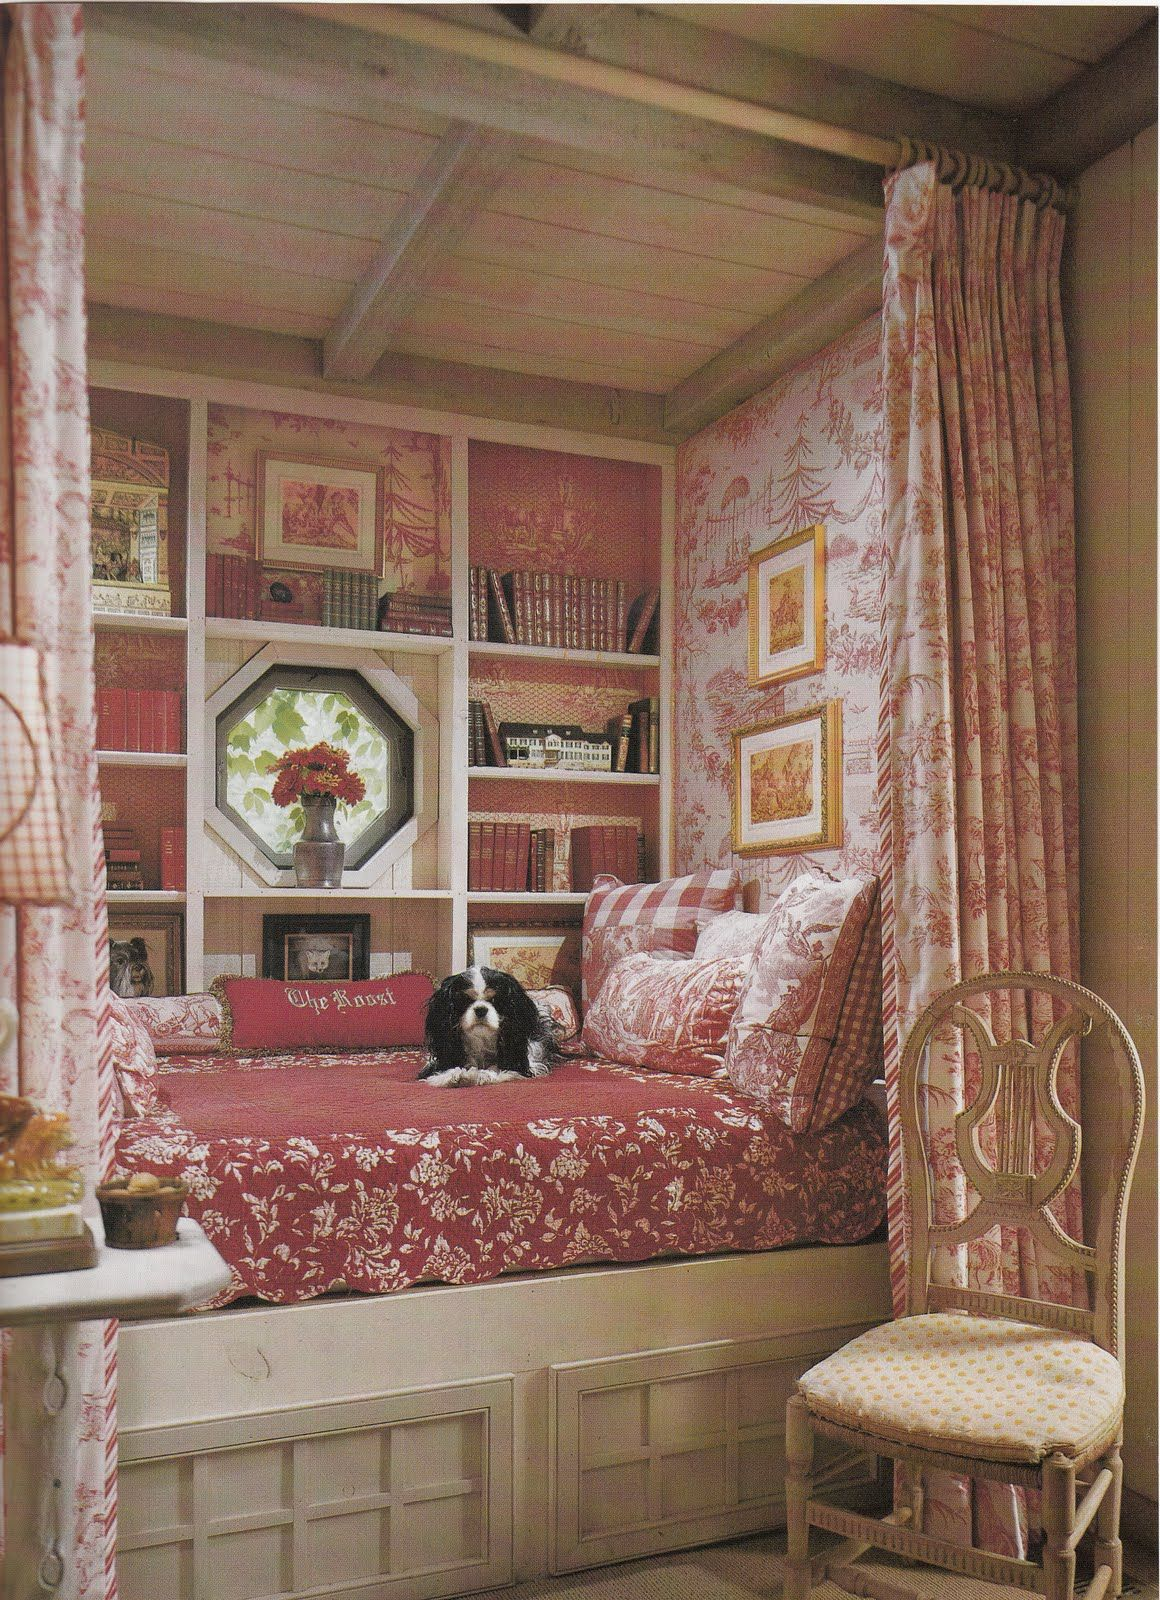 Built Insbed And Shelves Lovely Hydrangea Hill Cottage - French country cottage blog